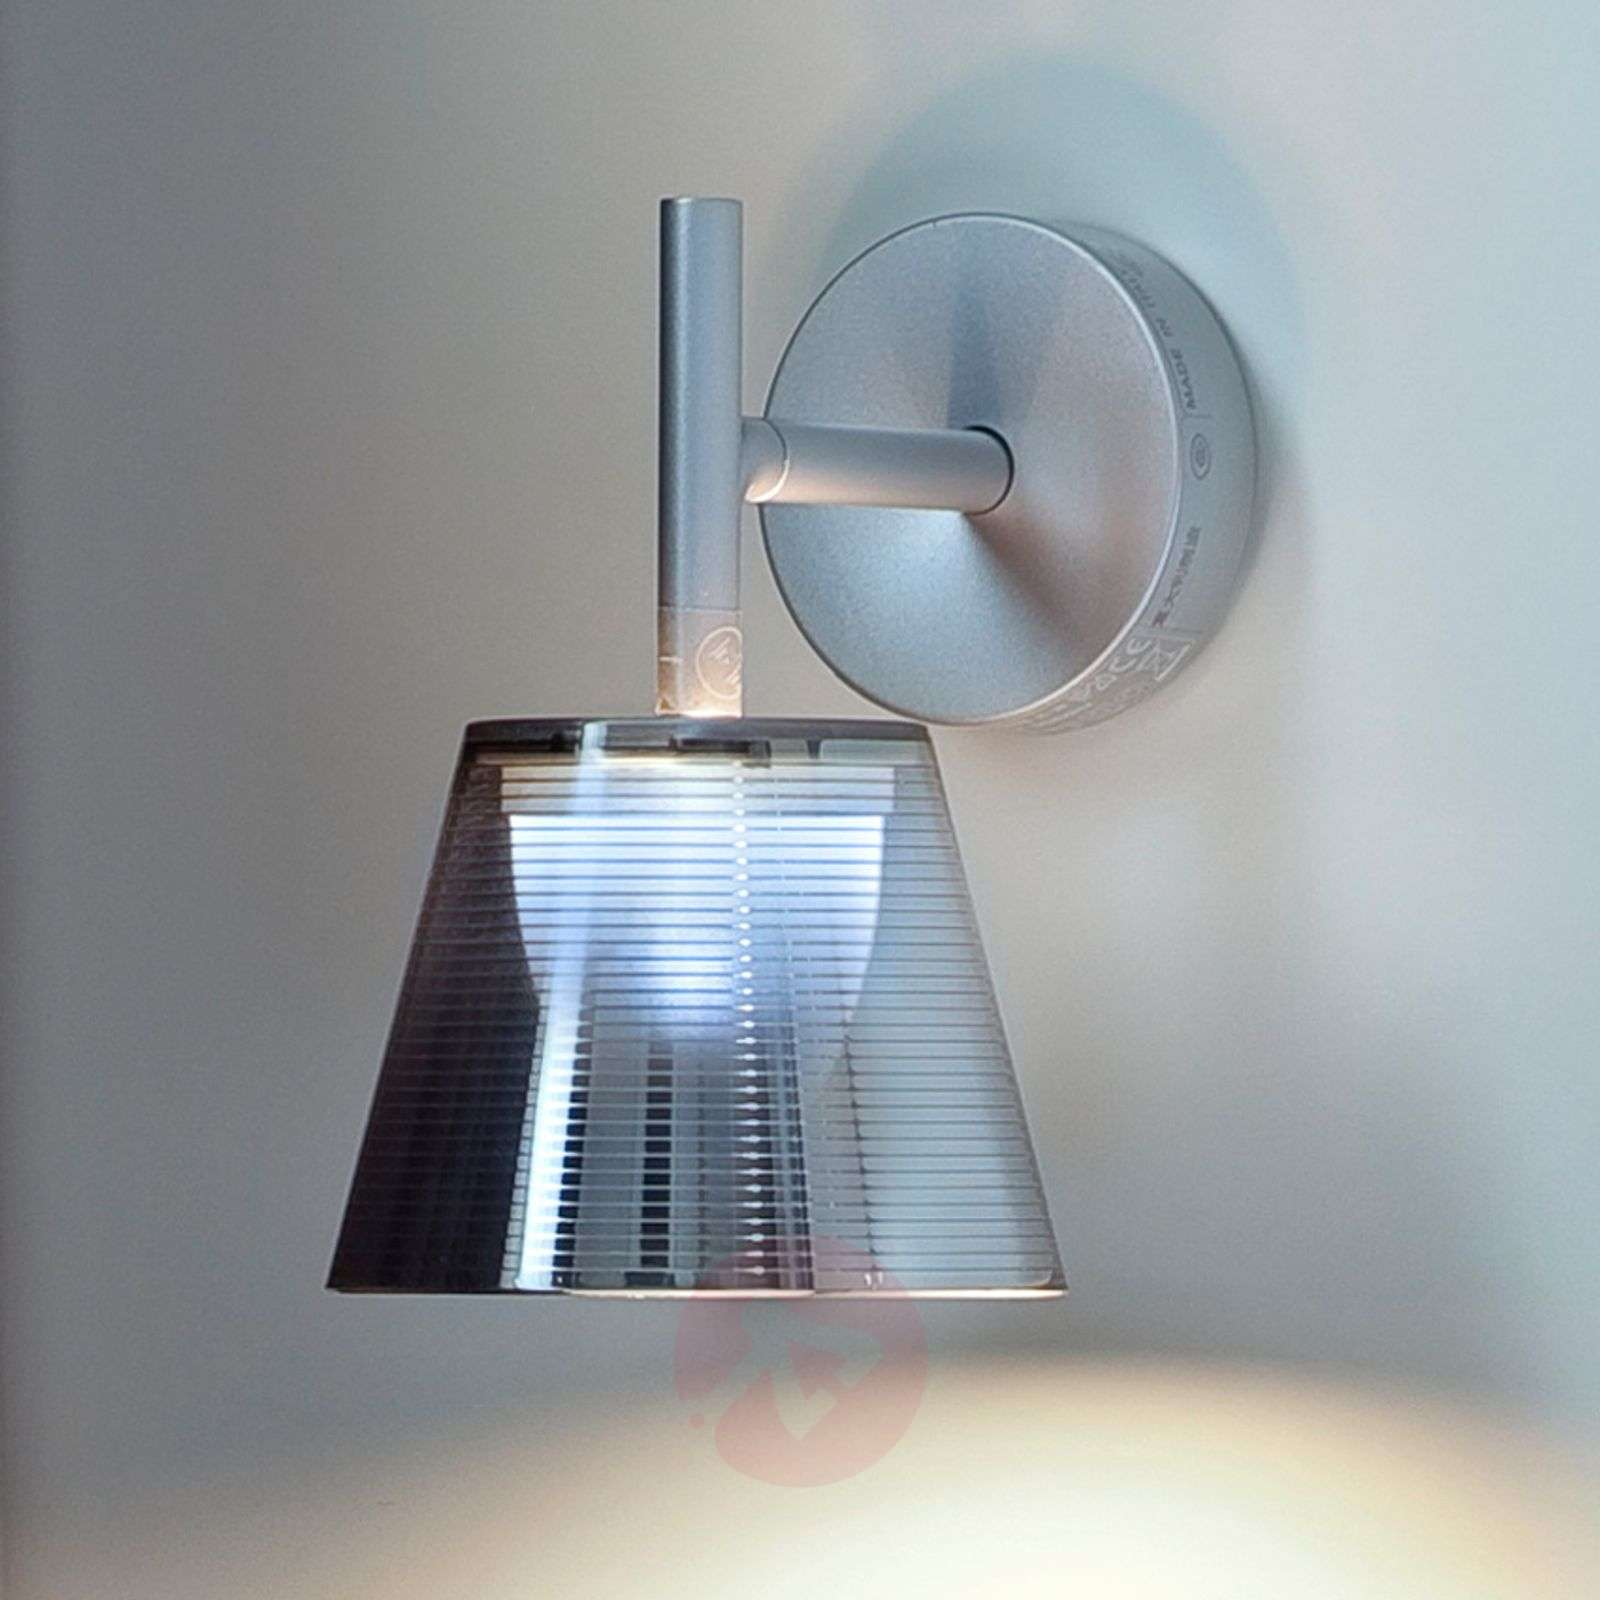 Romeo Babe K W Wall Lamp by FLOS | Lights.co.uk